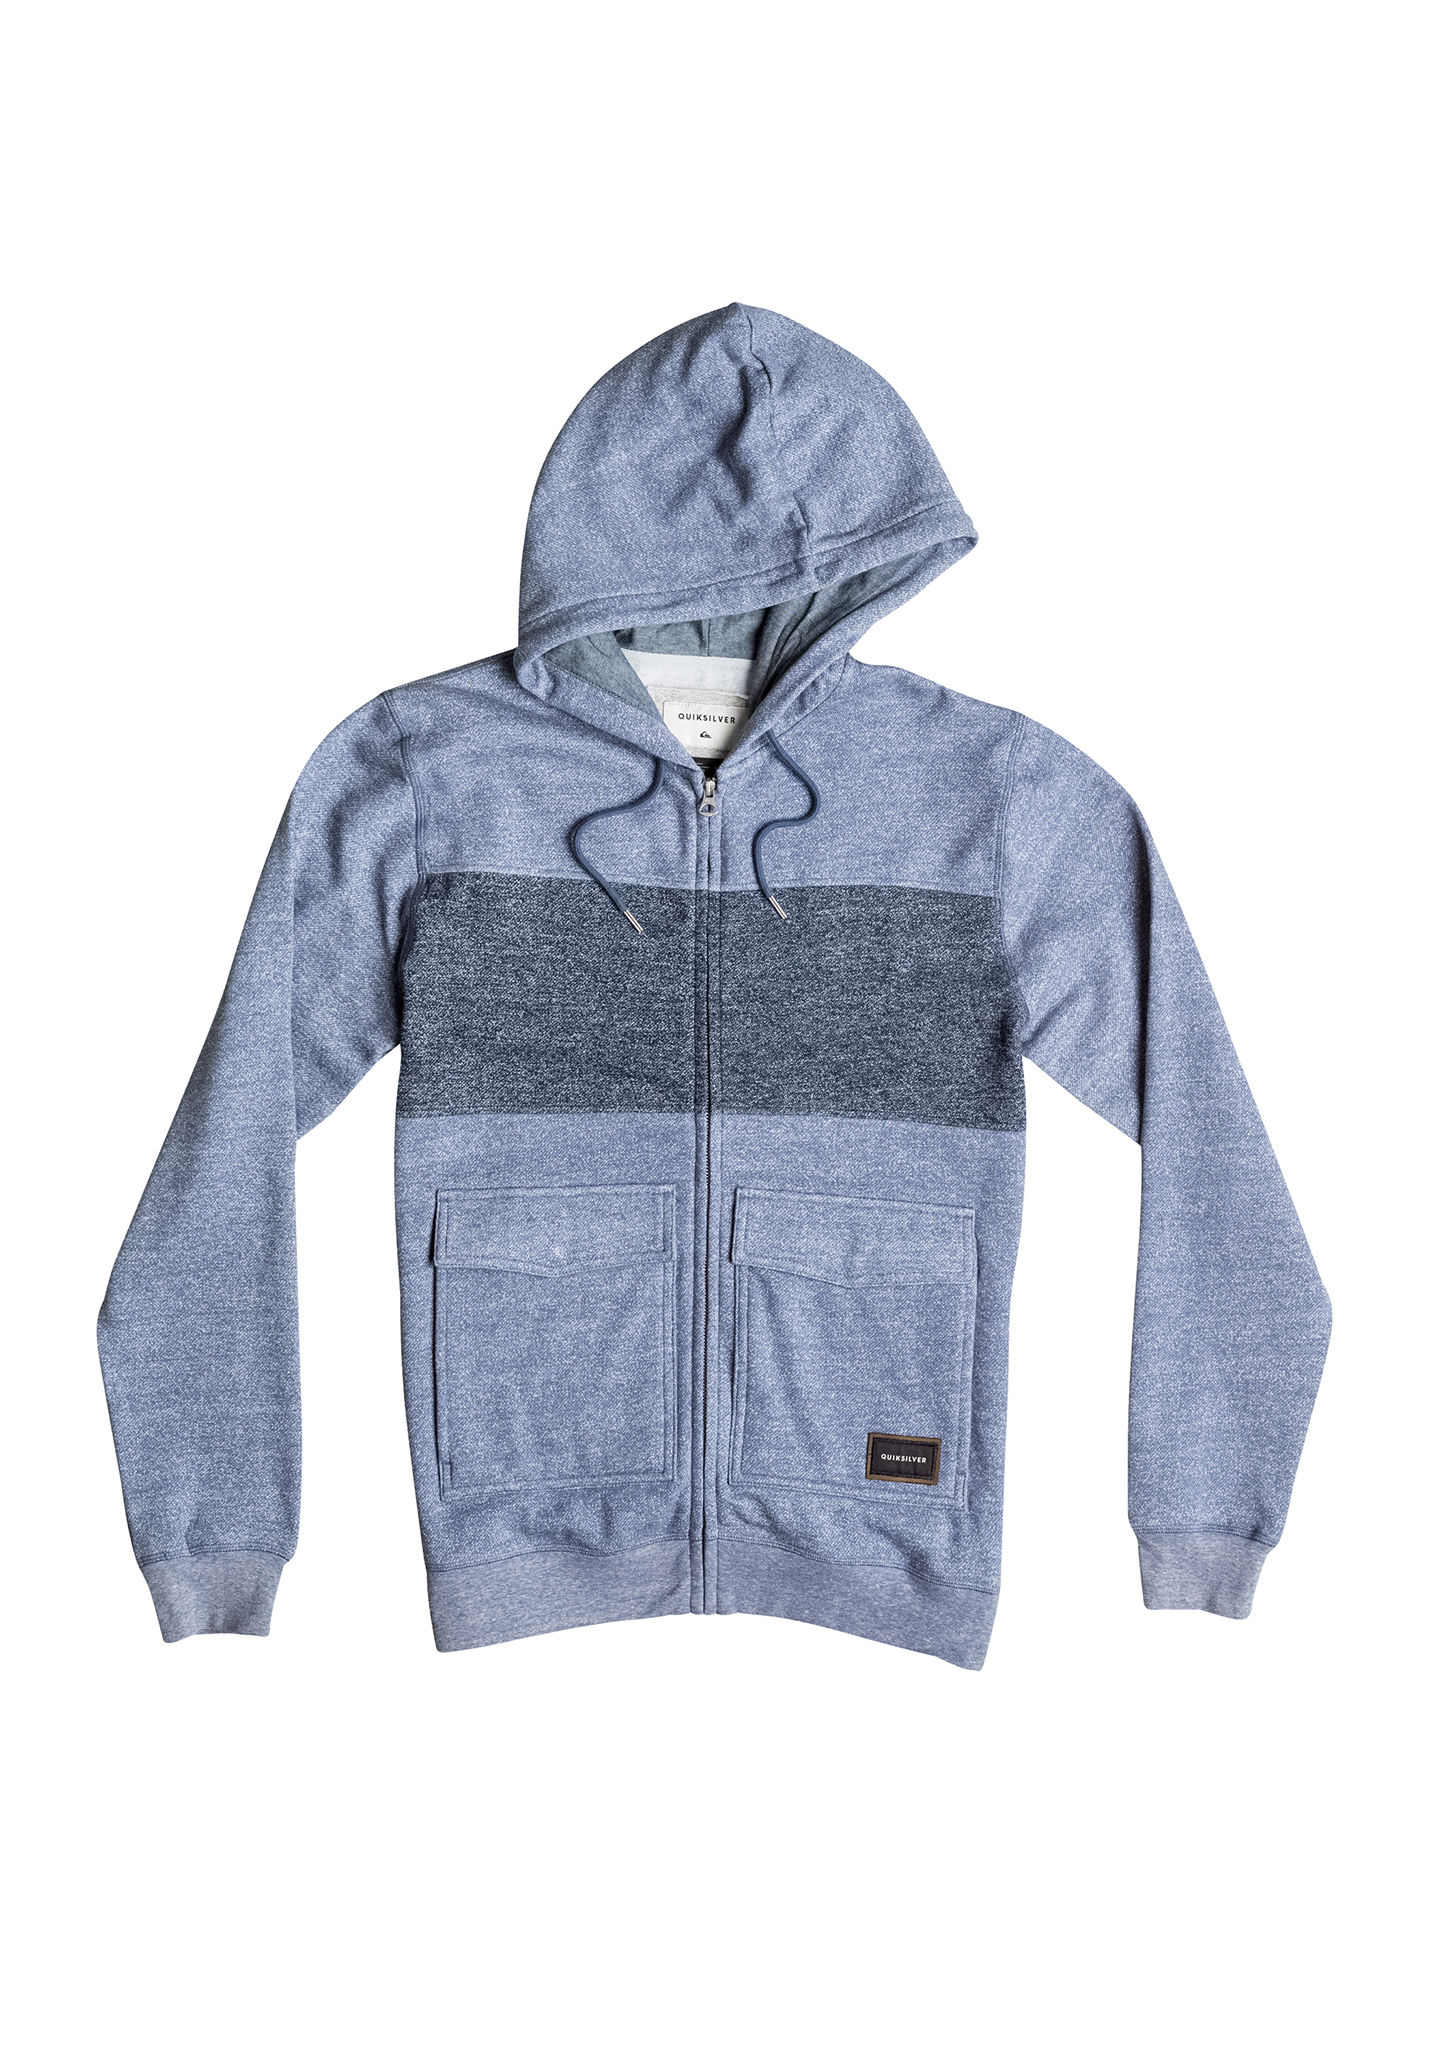 Quiksilver Dark Voice - Hooded Jacket for Men - Blue - Planet Sports 7e9755e0ce4